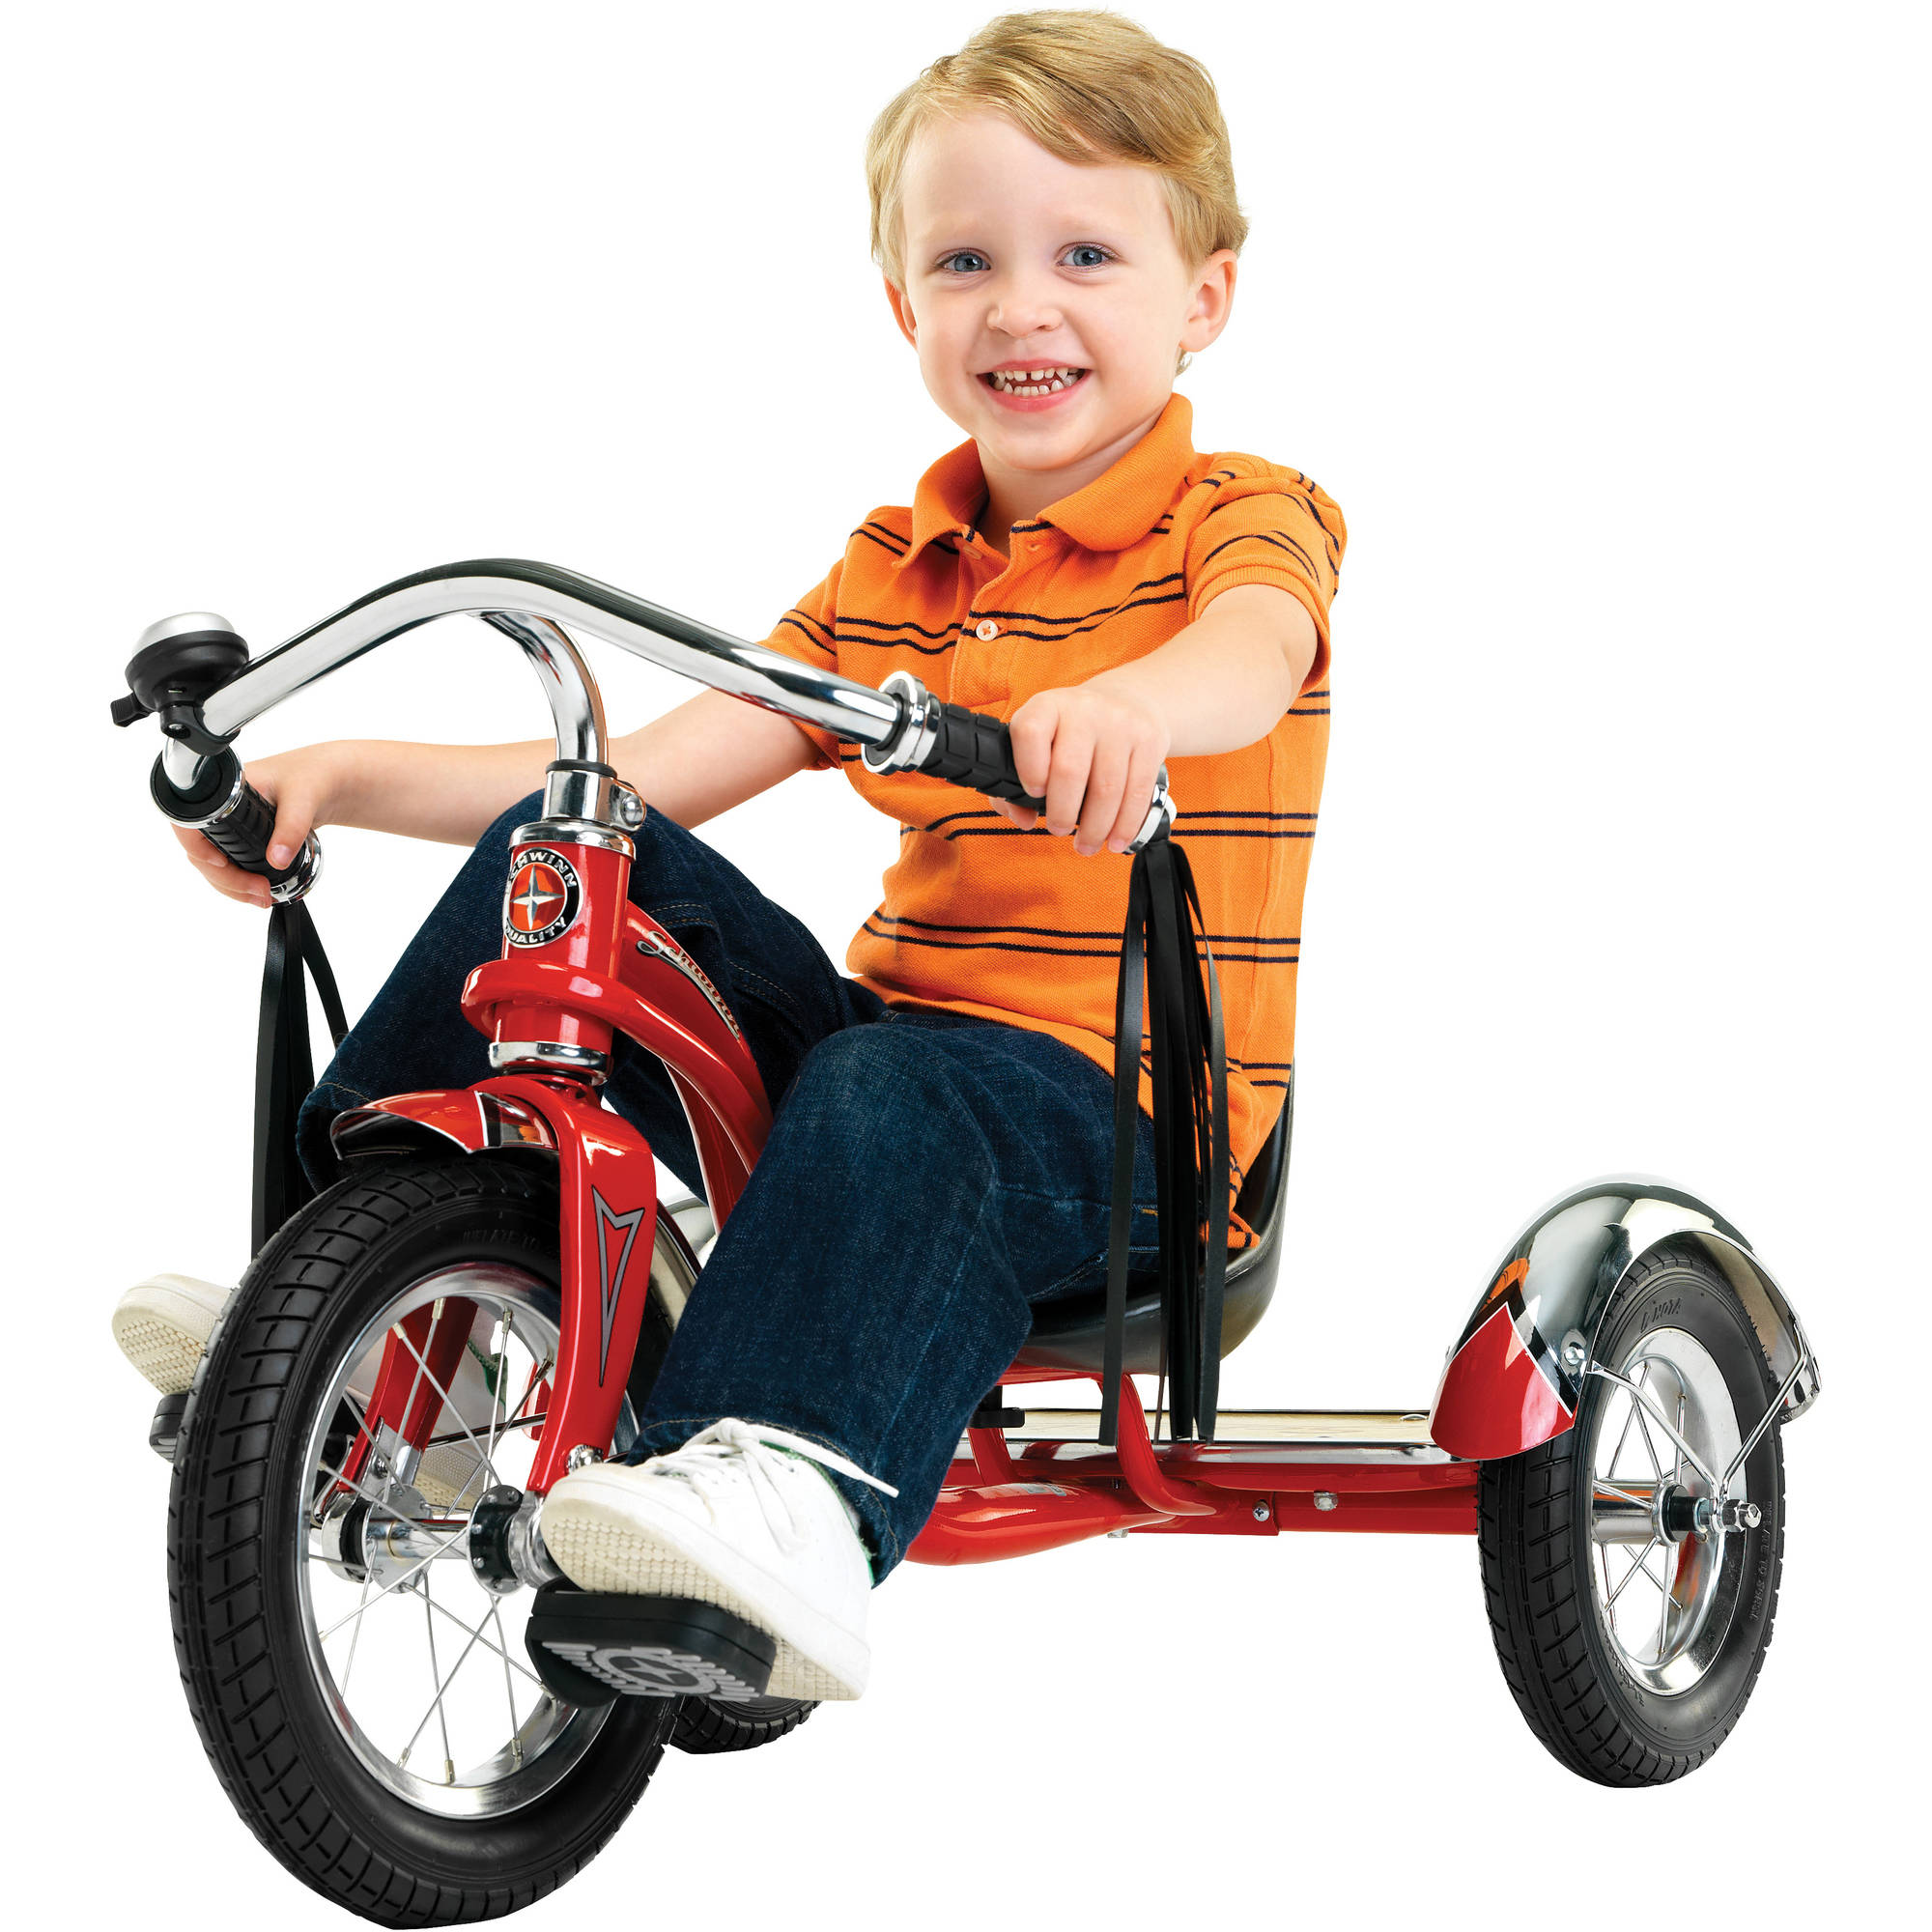 Harley Davidson Children S Tricycle